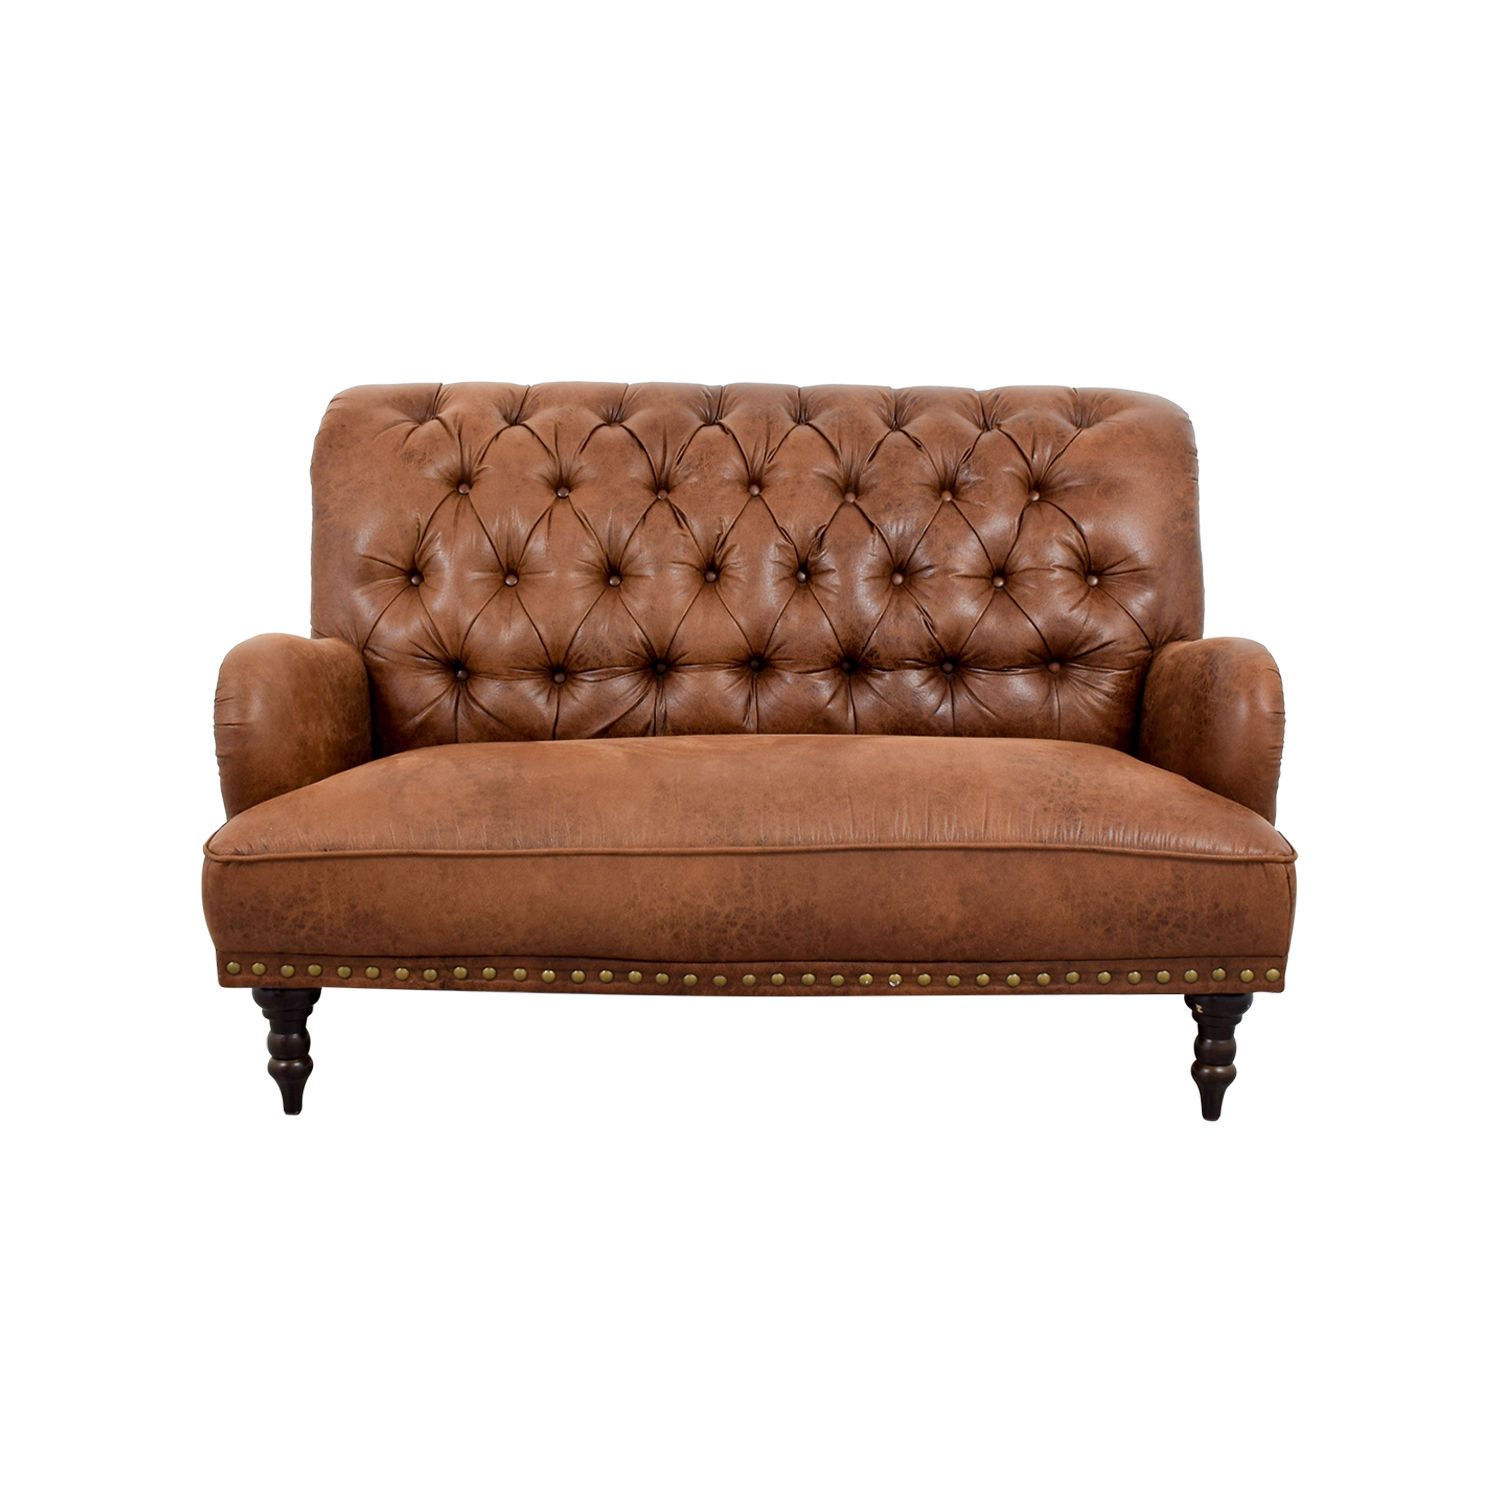 shop Pier 1 Imports Pier 1 Imports Faux Vintage Tufted Brown Leather Sofa online